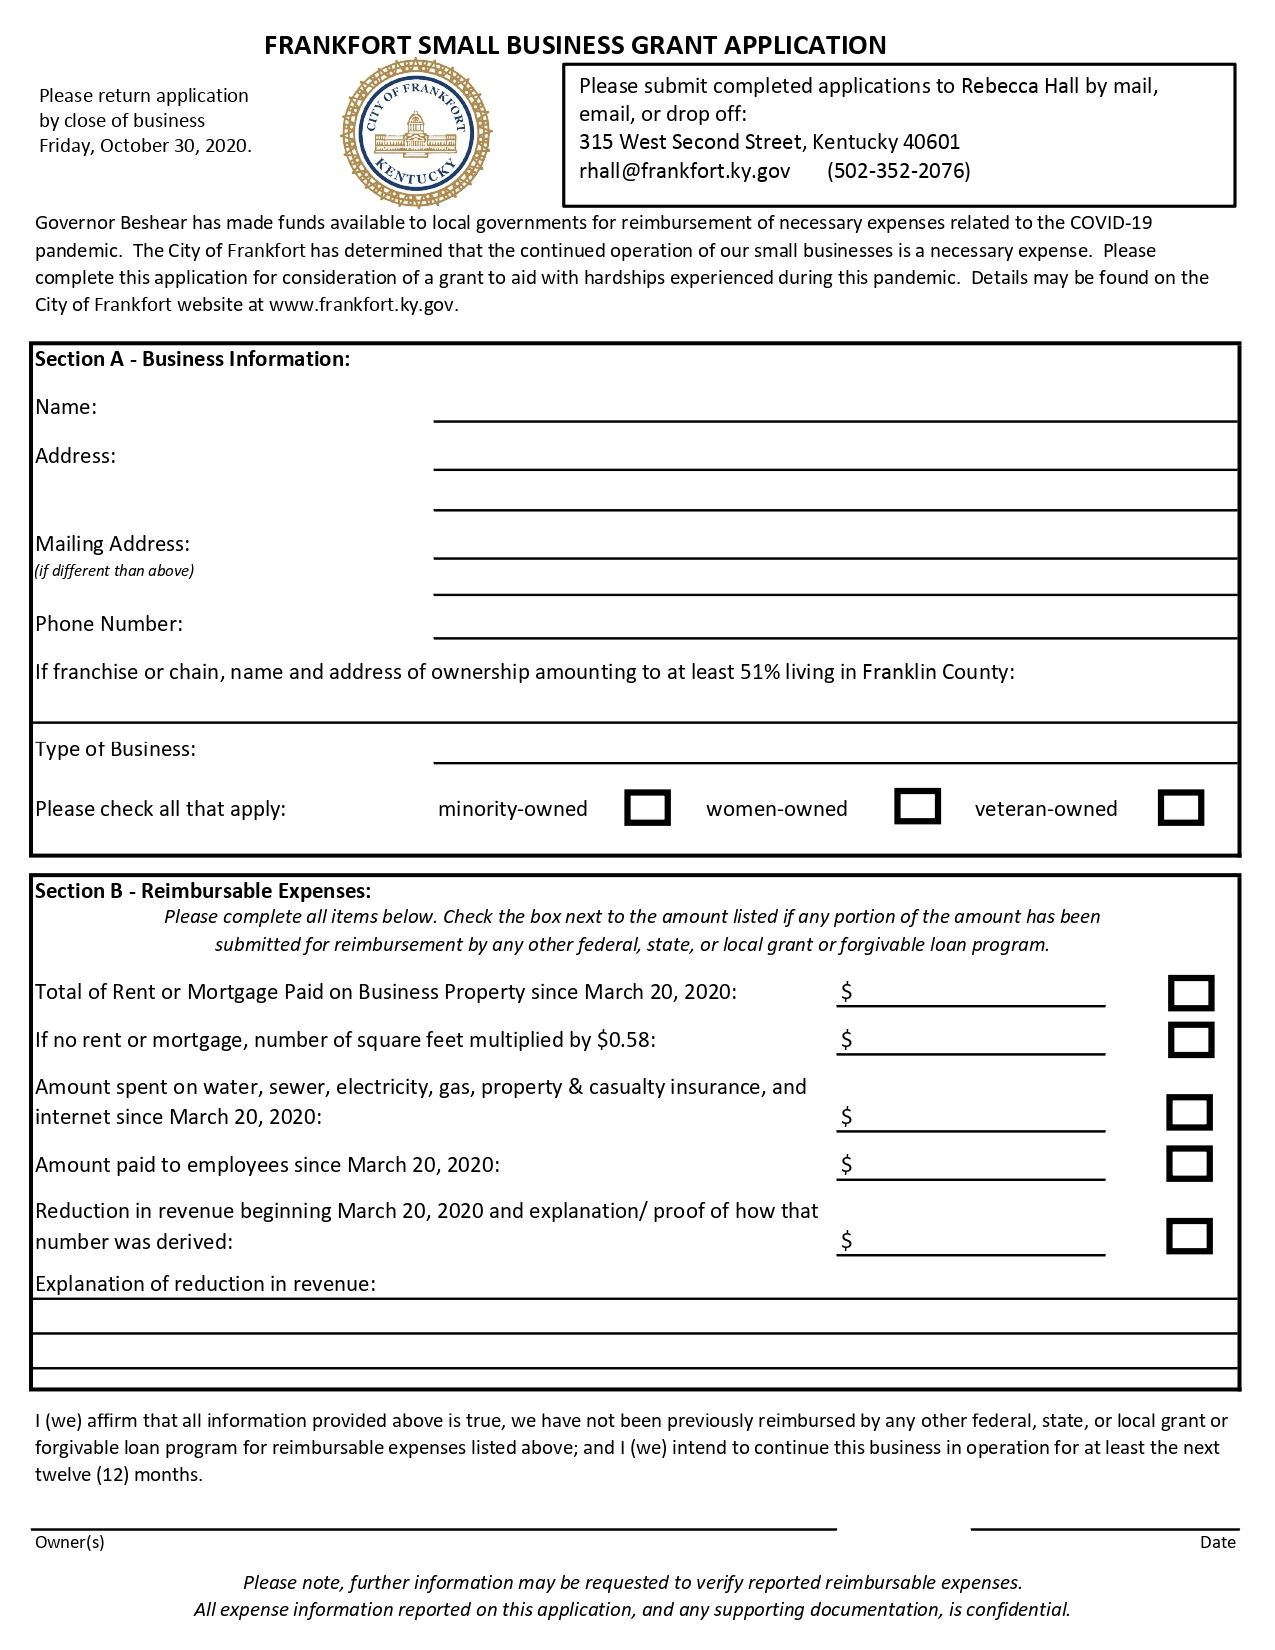 FSBG Application_page-0001